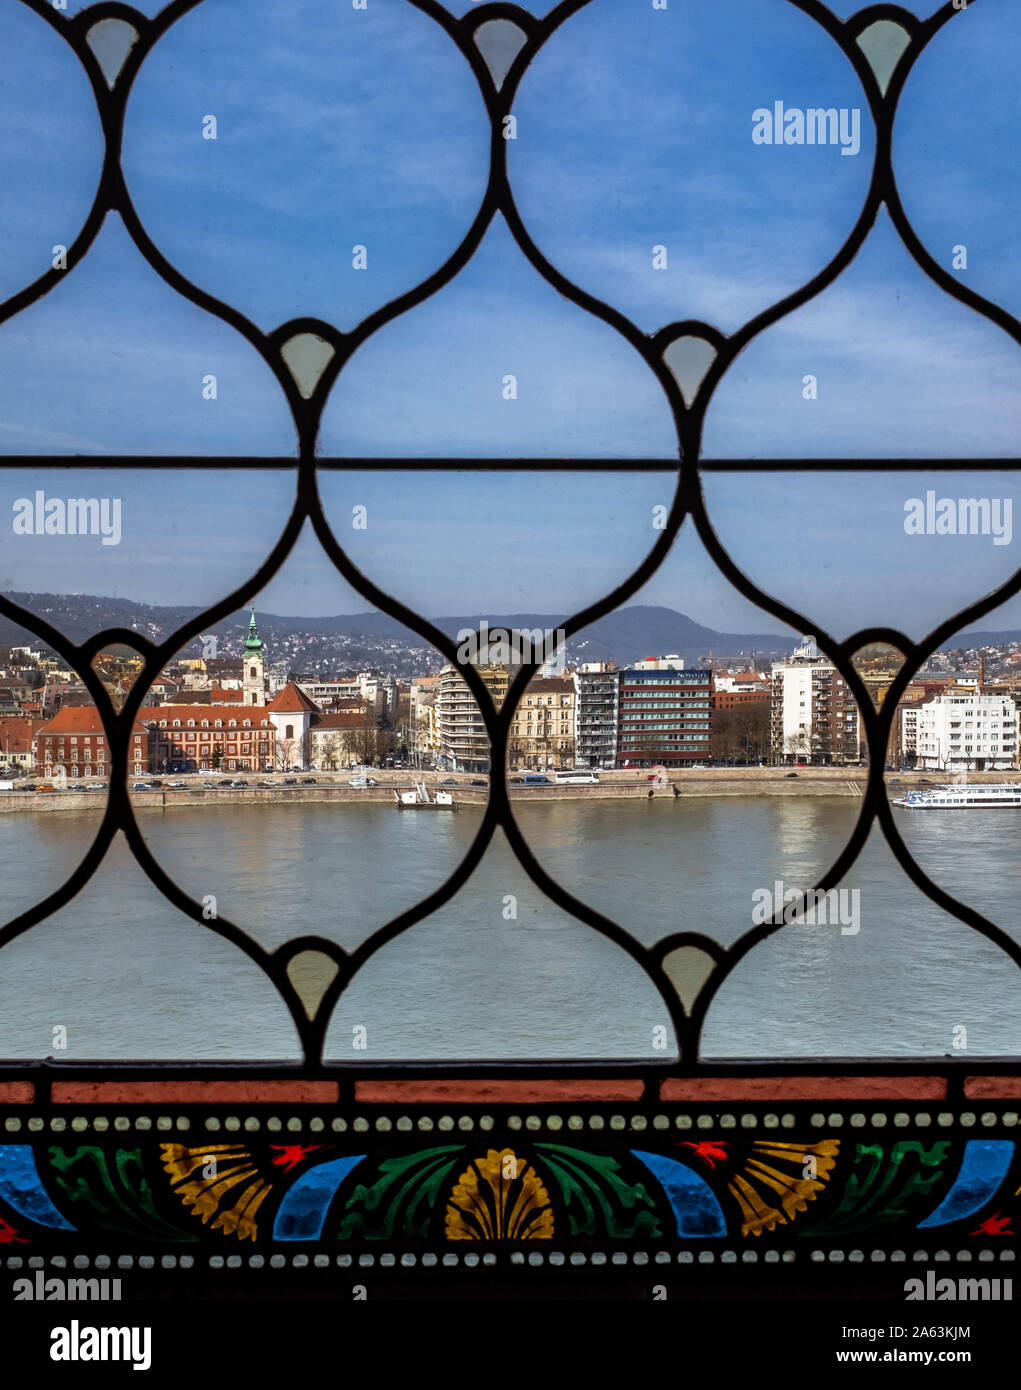 A view over Danube river and houses from Hungarian Parliament Building's window. Stock Photo